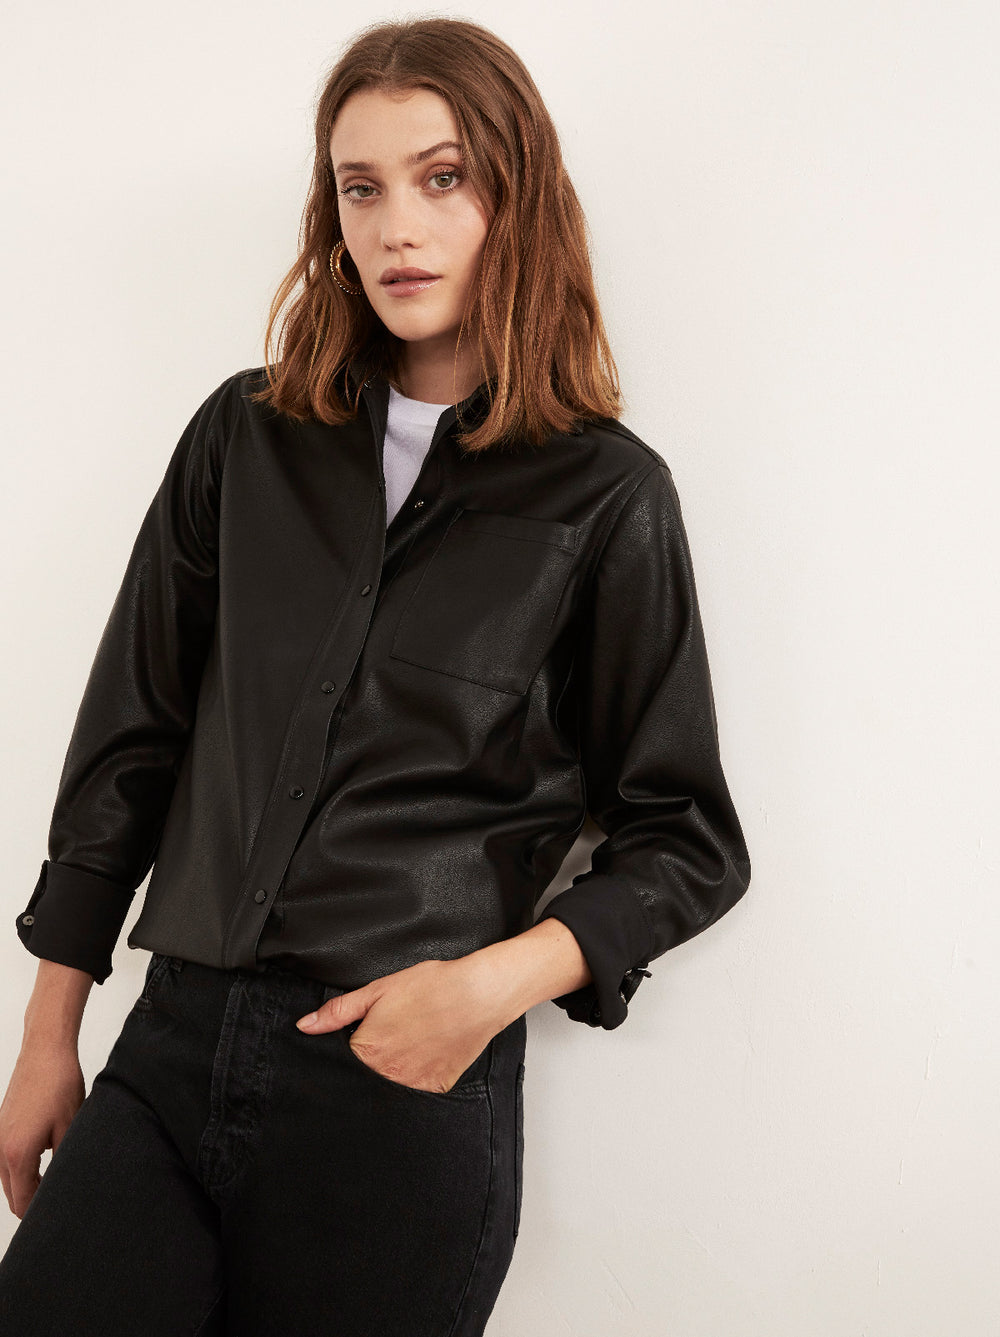 Willow Black Faux-Leather PU Shirt Jacket by KITRI Studio